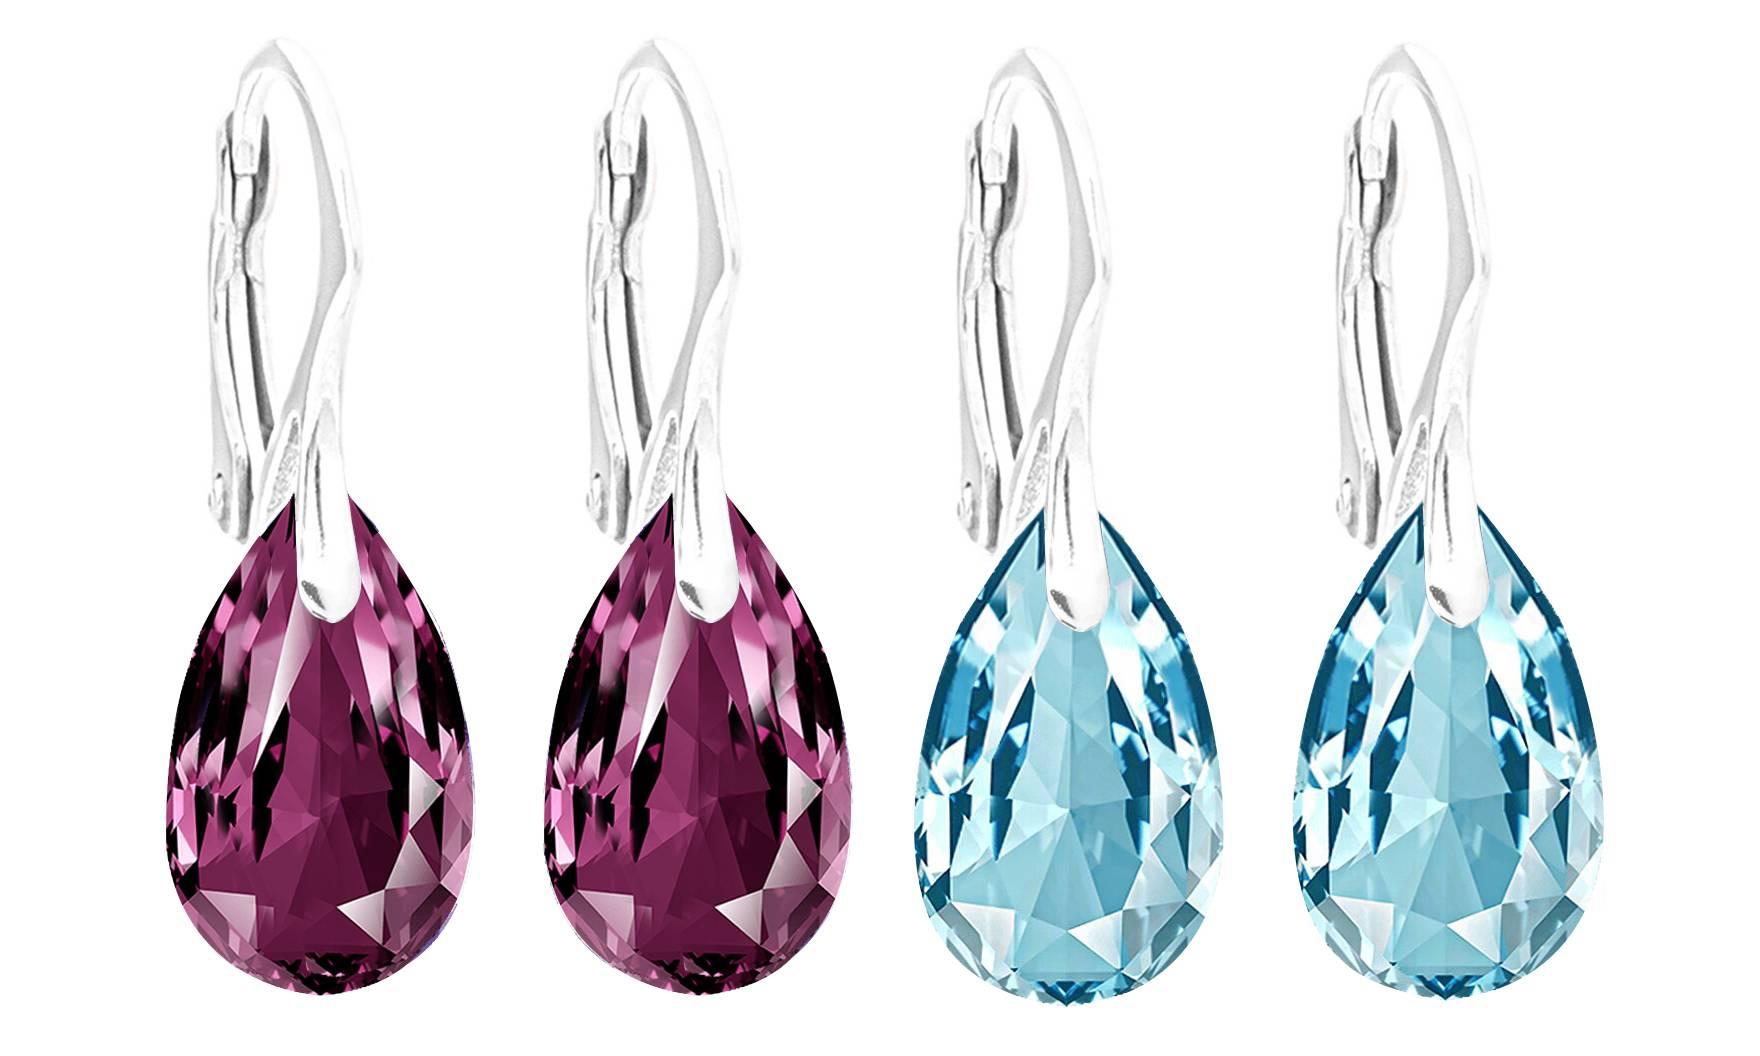 Ah! Jewellery® Ah! Jewellery® Ah! Jewellery Silver Earrings: Amethyst and Aqua Pear Crystals / Two Pairs - One of Each